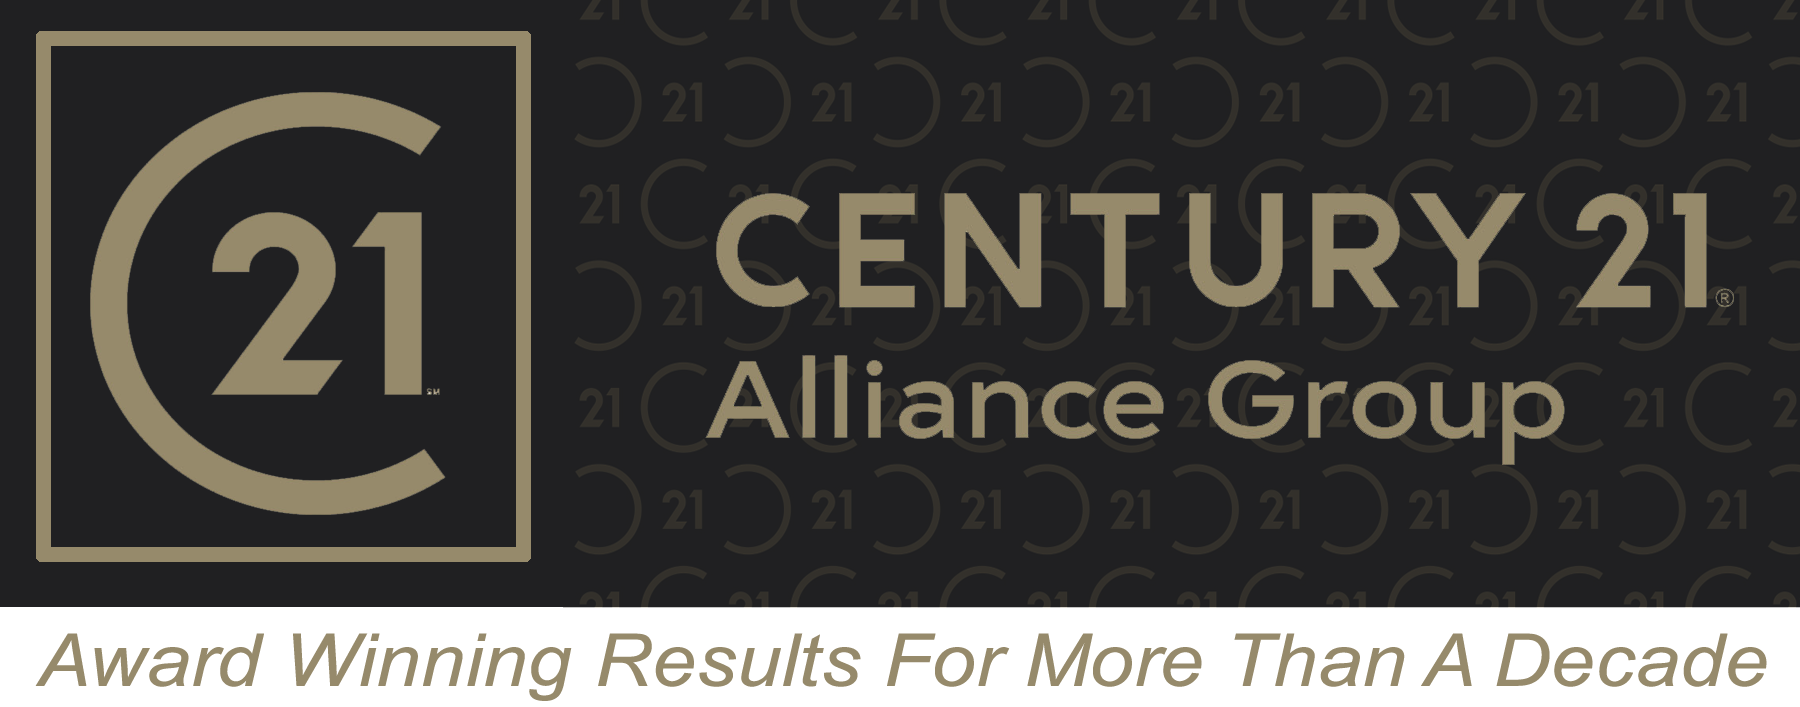 Century 21 Alliance Logo - Award Winning Results for More Than a Decade